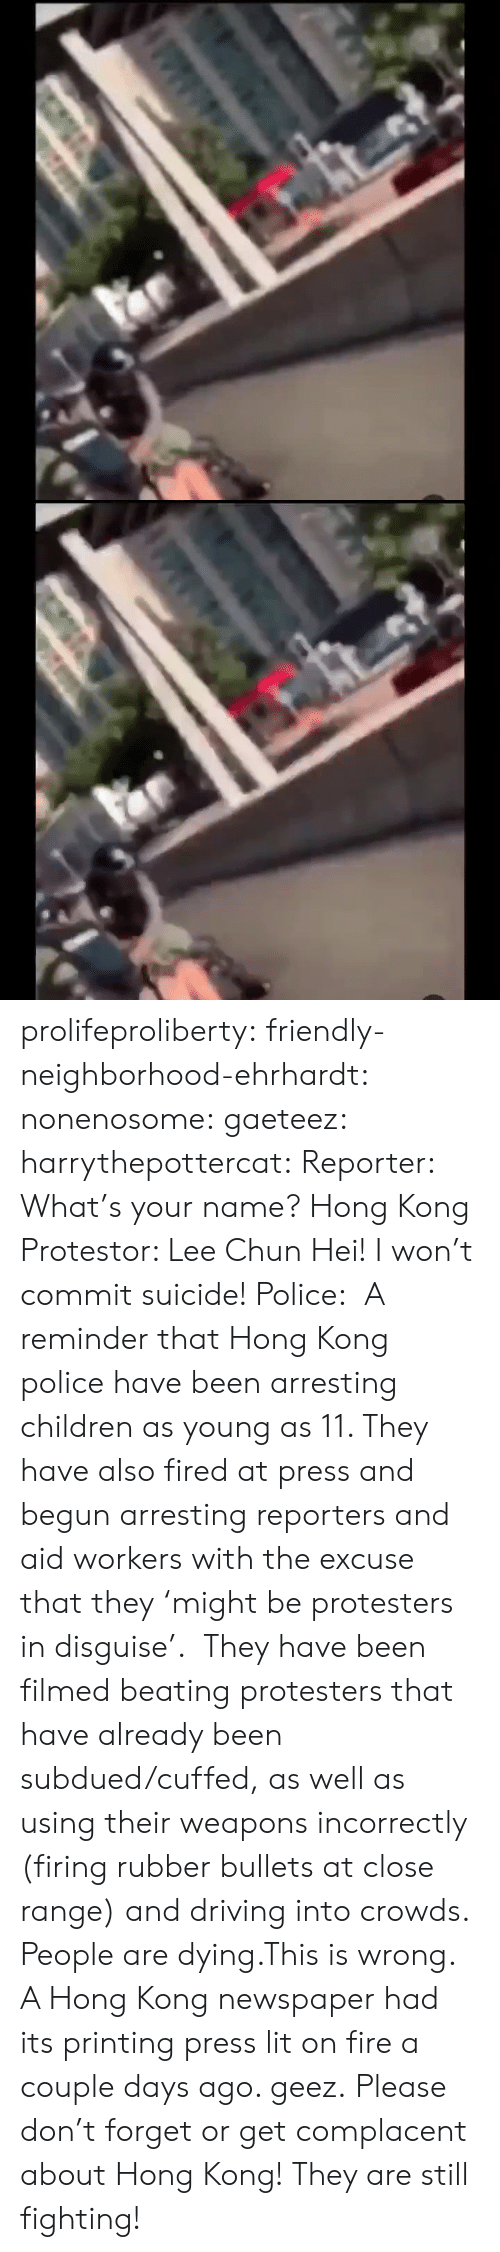 Printing: के.  ॥ल prolifeproliberty:  friendly-neighborhood-ehrhardt:  nonenosome:  gaeteez:   harrythepottercat:  Reporter: What's your name? Hong Kong Protestor: Lee Chun Hei! I won't commit suicide! Police:    A reminder that Hong Kong police have been arresting children as young as 11. They have also fired at press and begun arresting reporters and aid workers with the excuse that they 'might be protesters in disguise'.  They have been filmed beating protesters that have already been subdued/cuffed, as well as using their weapons incorrectly (firing rubber bullets at close range) and driving into crowds.  People are dying.This is wrong.    A Hong Kong newspaper had its printing press lit on fire a couple days ago.   geez.   Please don't forget or get complacent about Hong Kong! They are still fighting!